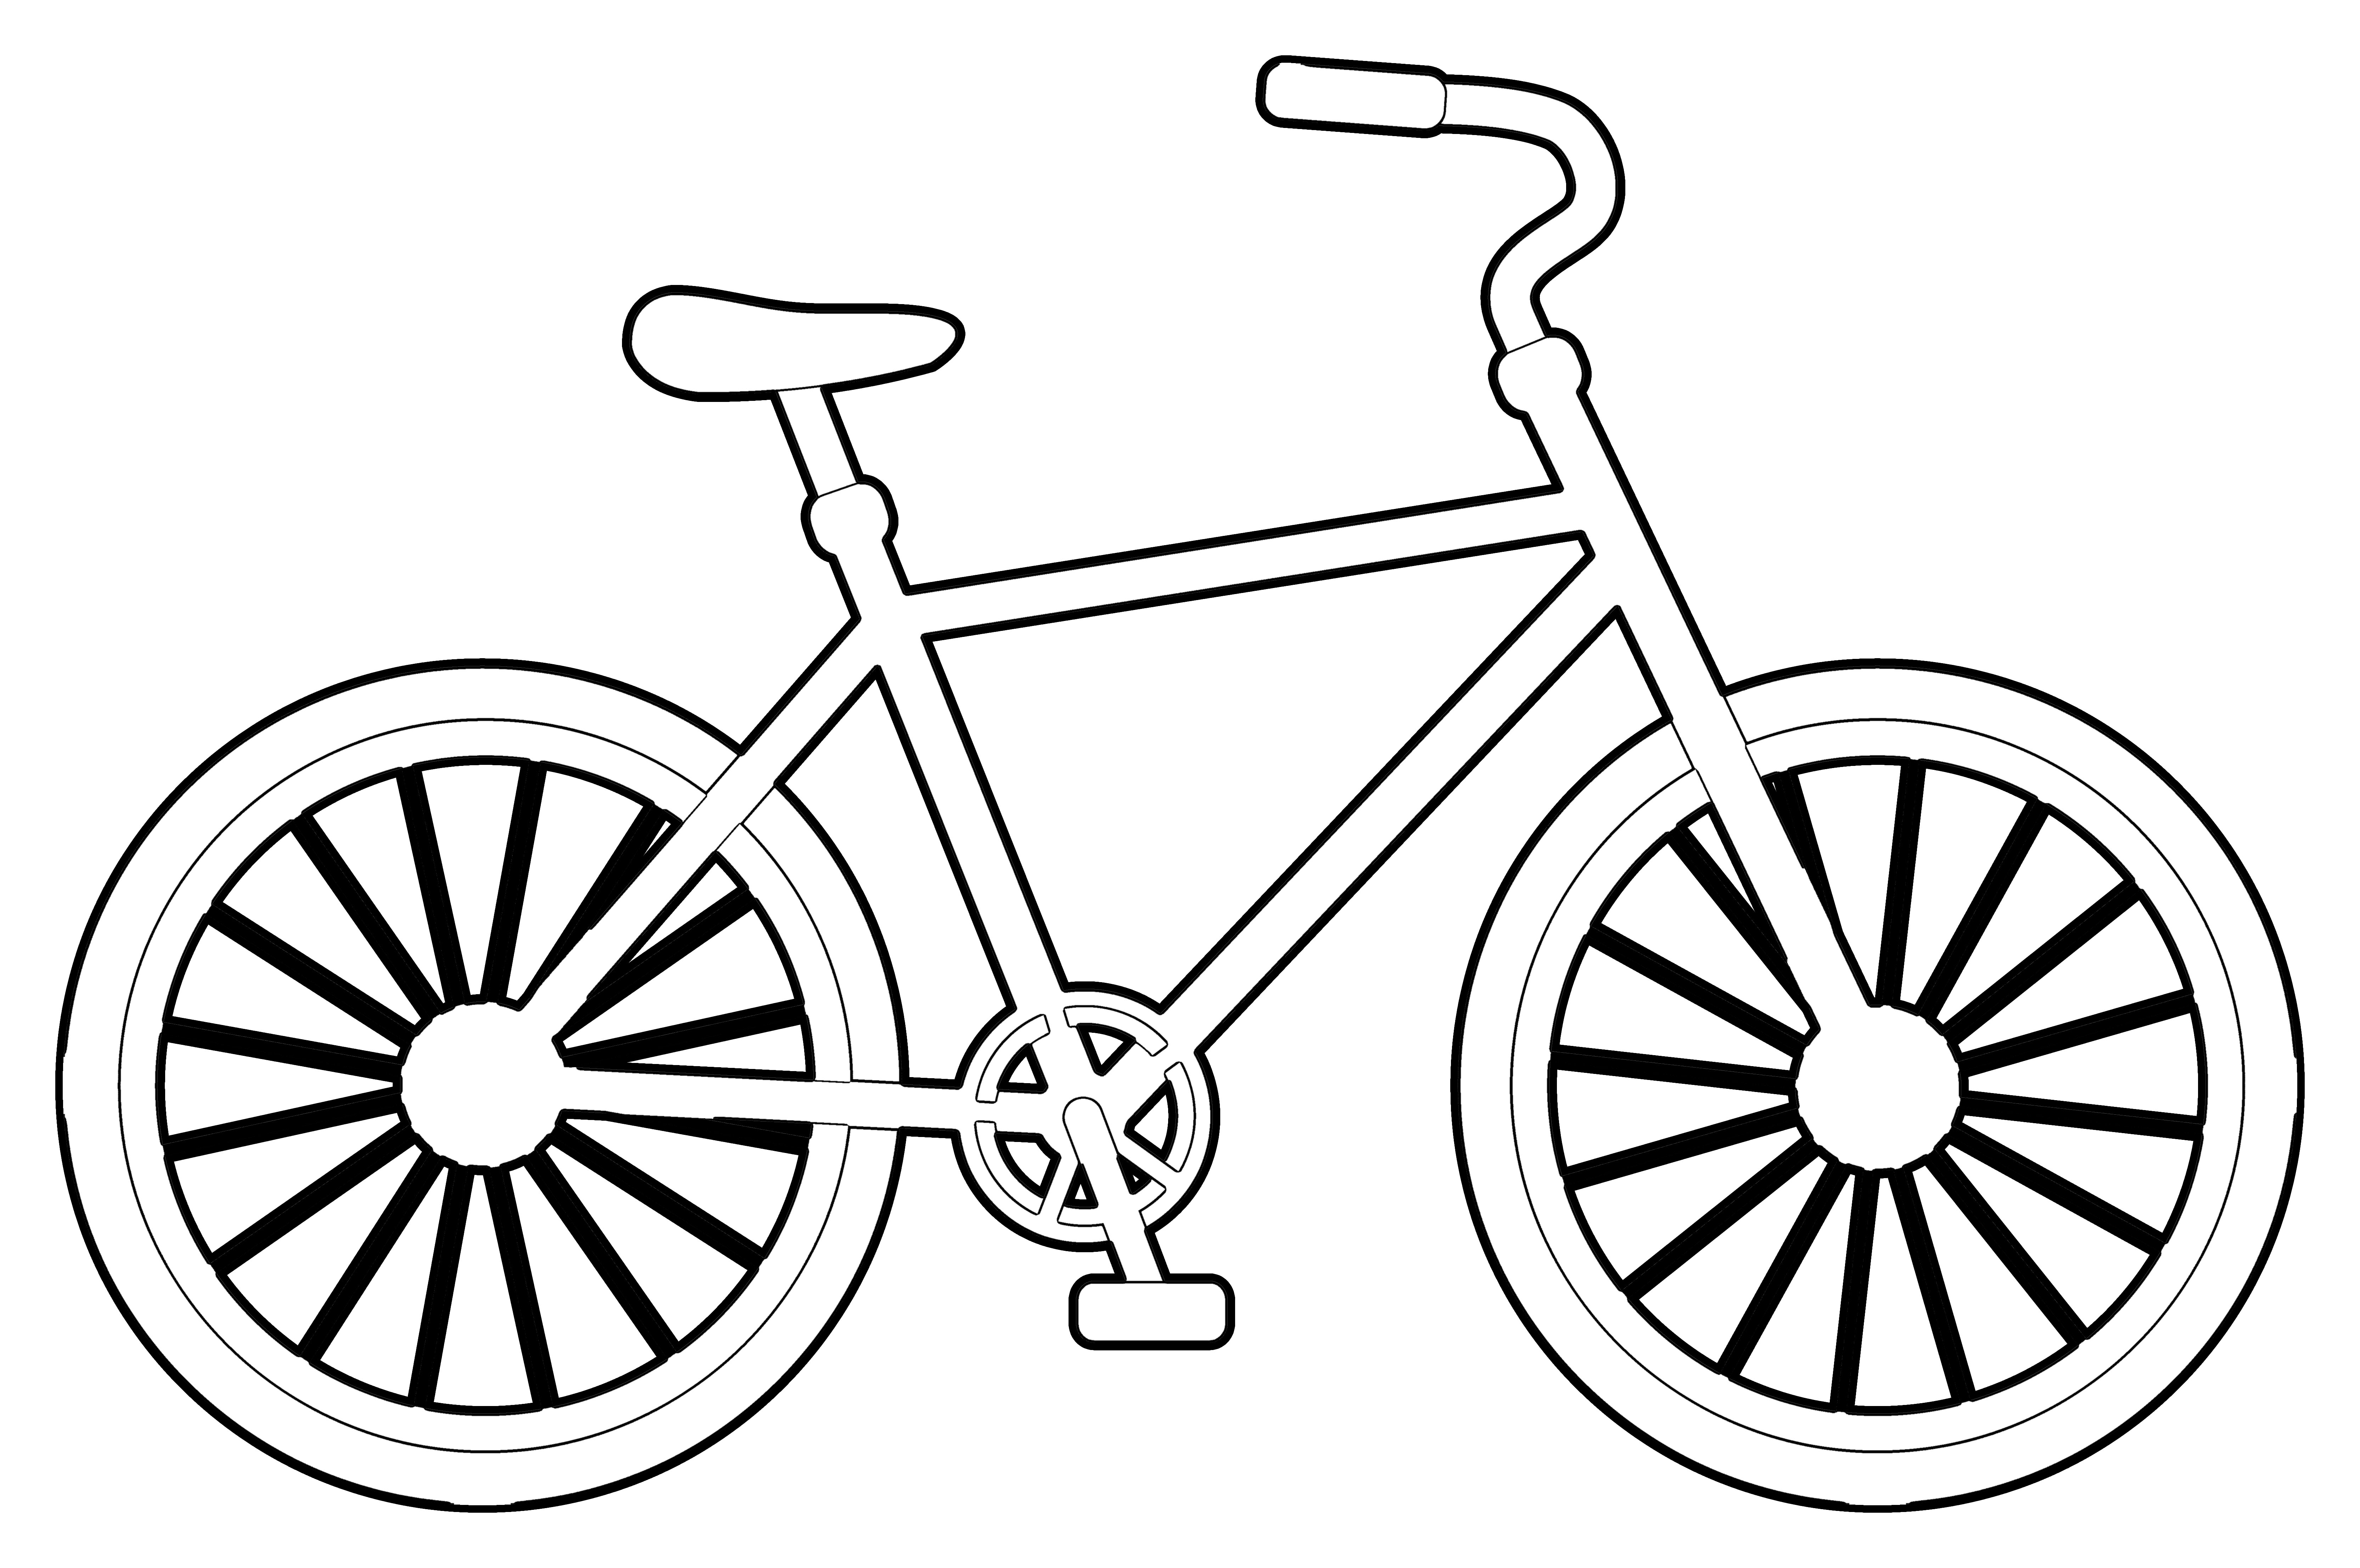 bike coloring pages bike coloring page getcoloringpagescom bike coloring pages